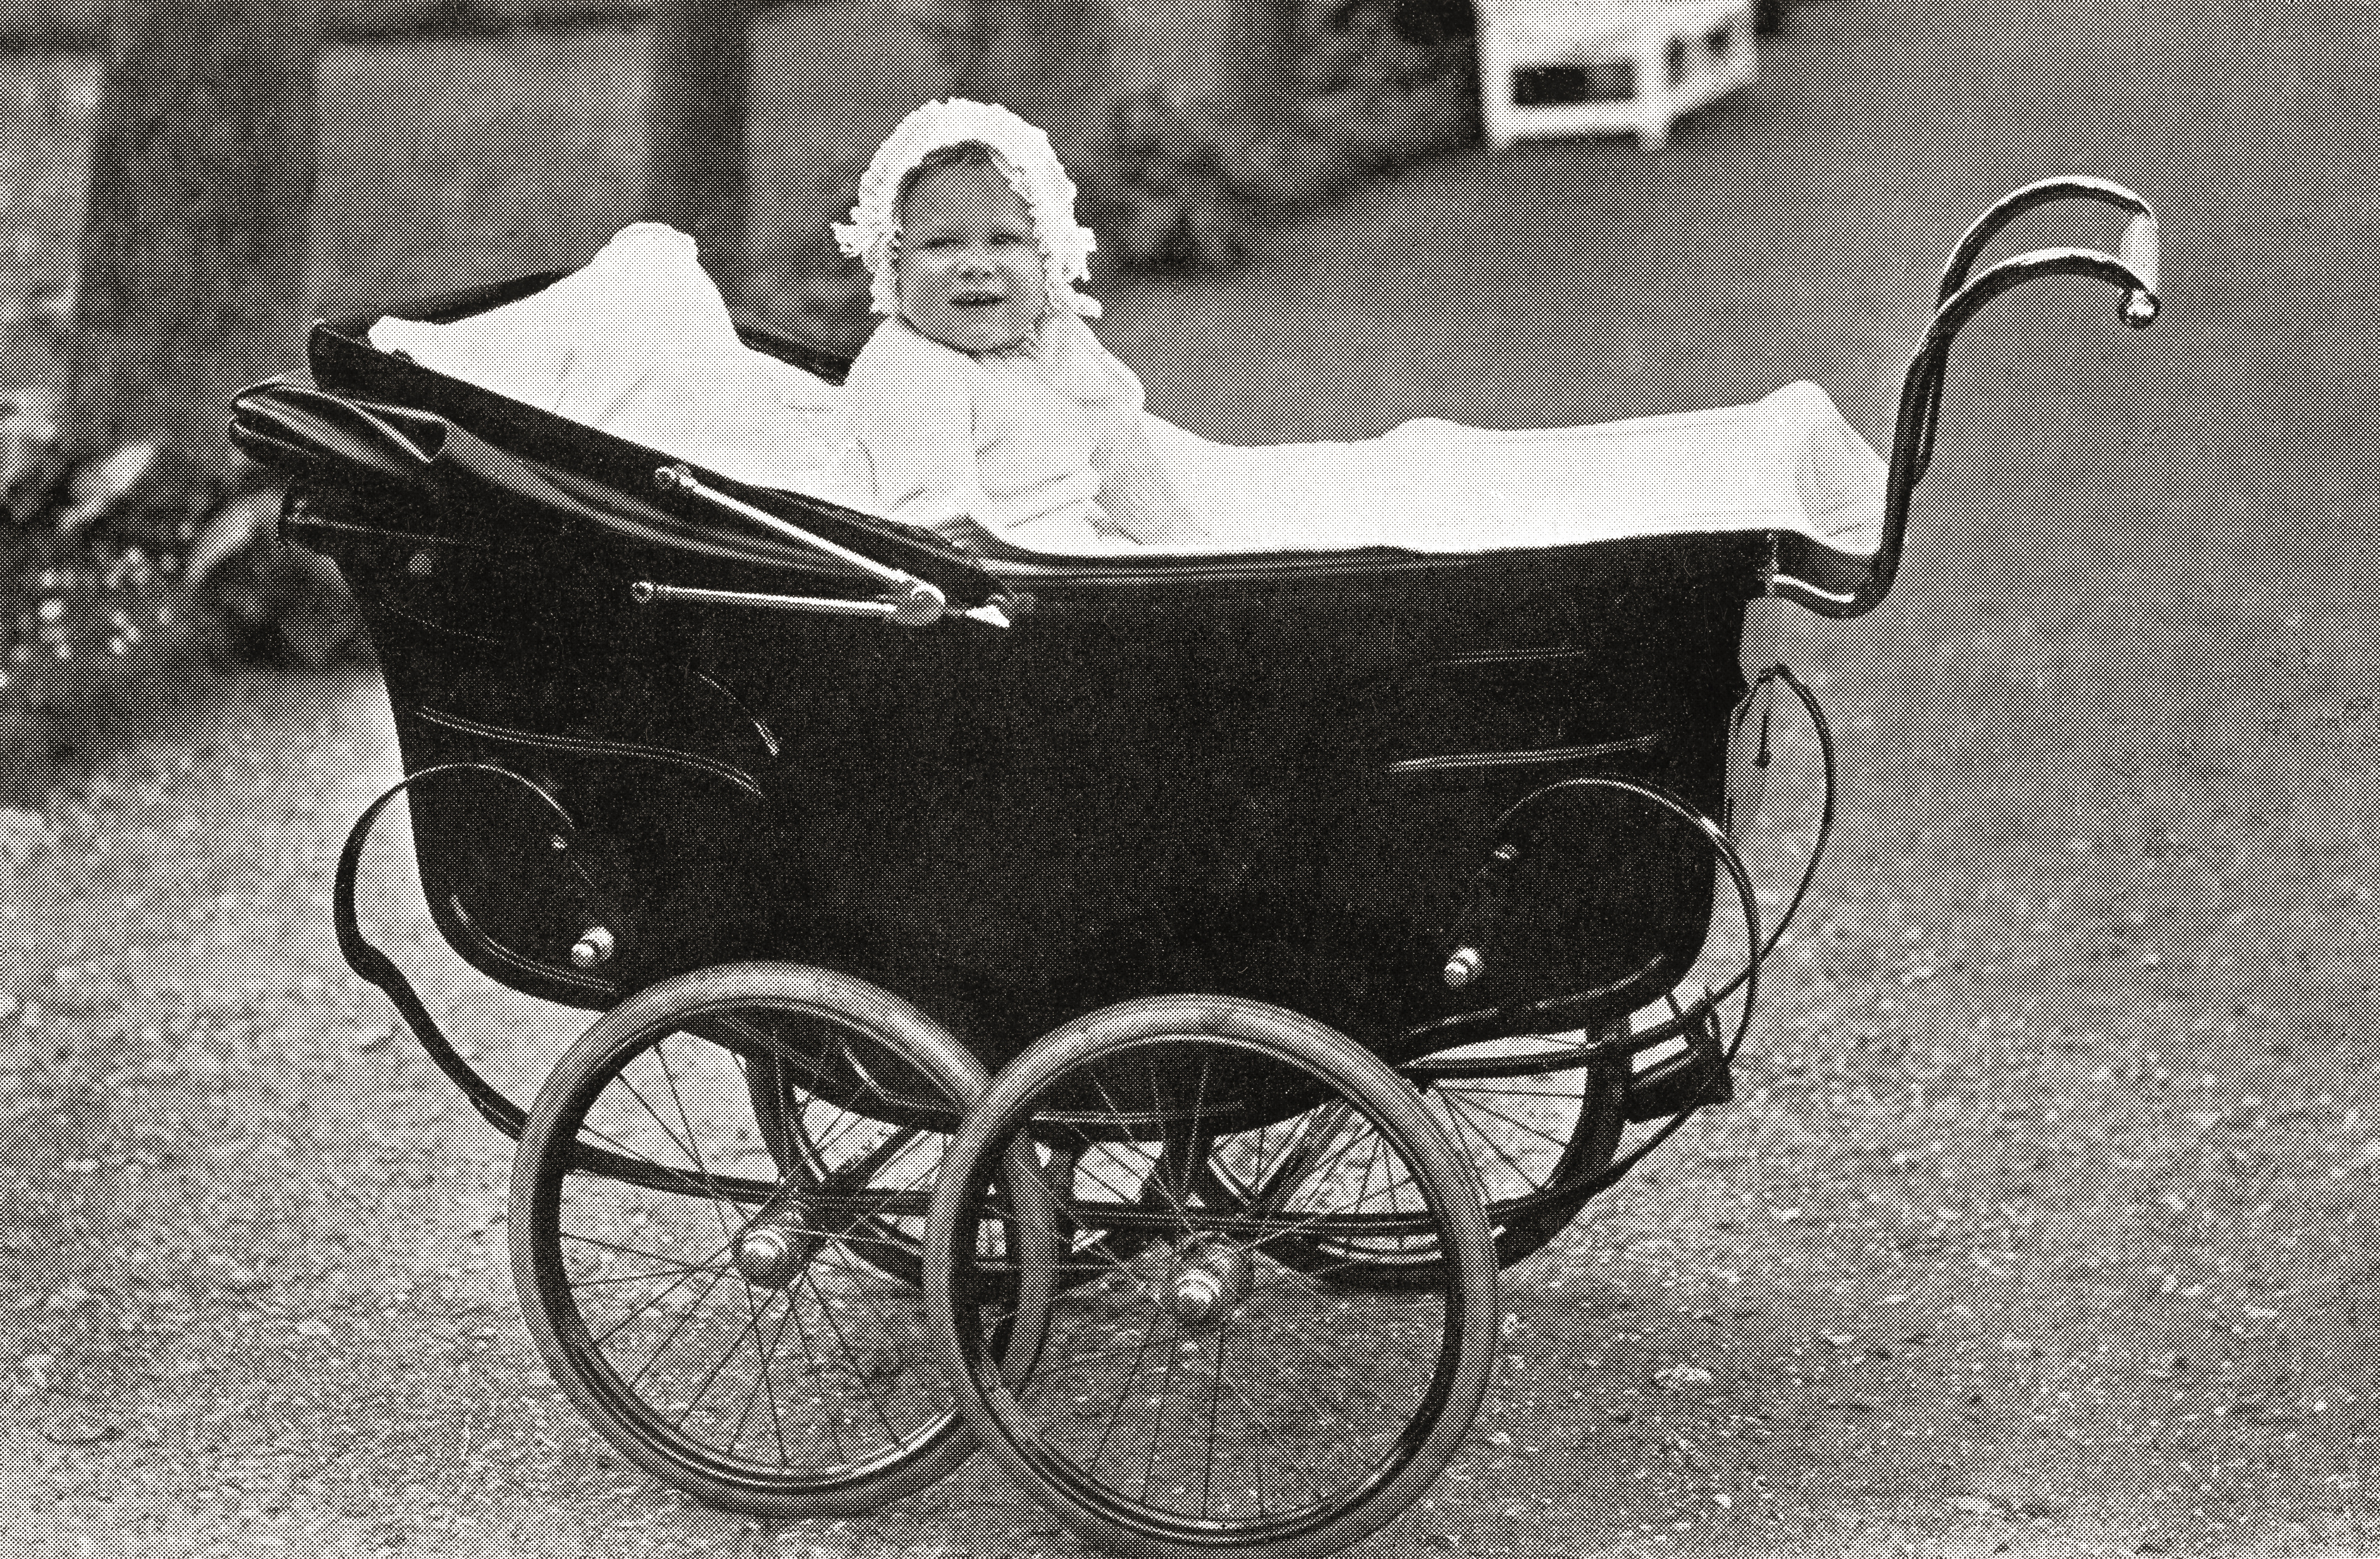 Princess Elizabeth as a baby, at St. Paul's Walden Bury, St Paul's Walden, Hertfordshire, England, home of the Bowes-Lyon family. Princess Elizabeth future Elizabeth II, born 1926. Queen of the United Kingdom, Canada, Australia and New Zealand. From The Duchess of York, published c.1928. (Photo by: Universal History Archive/UIG via Getty Images)